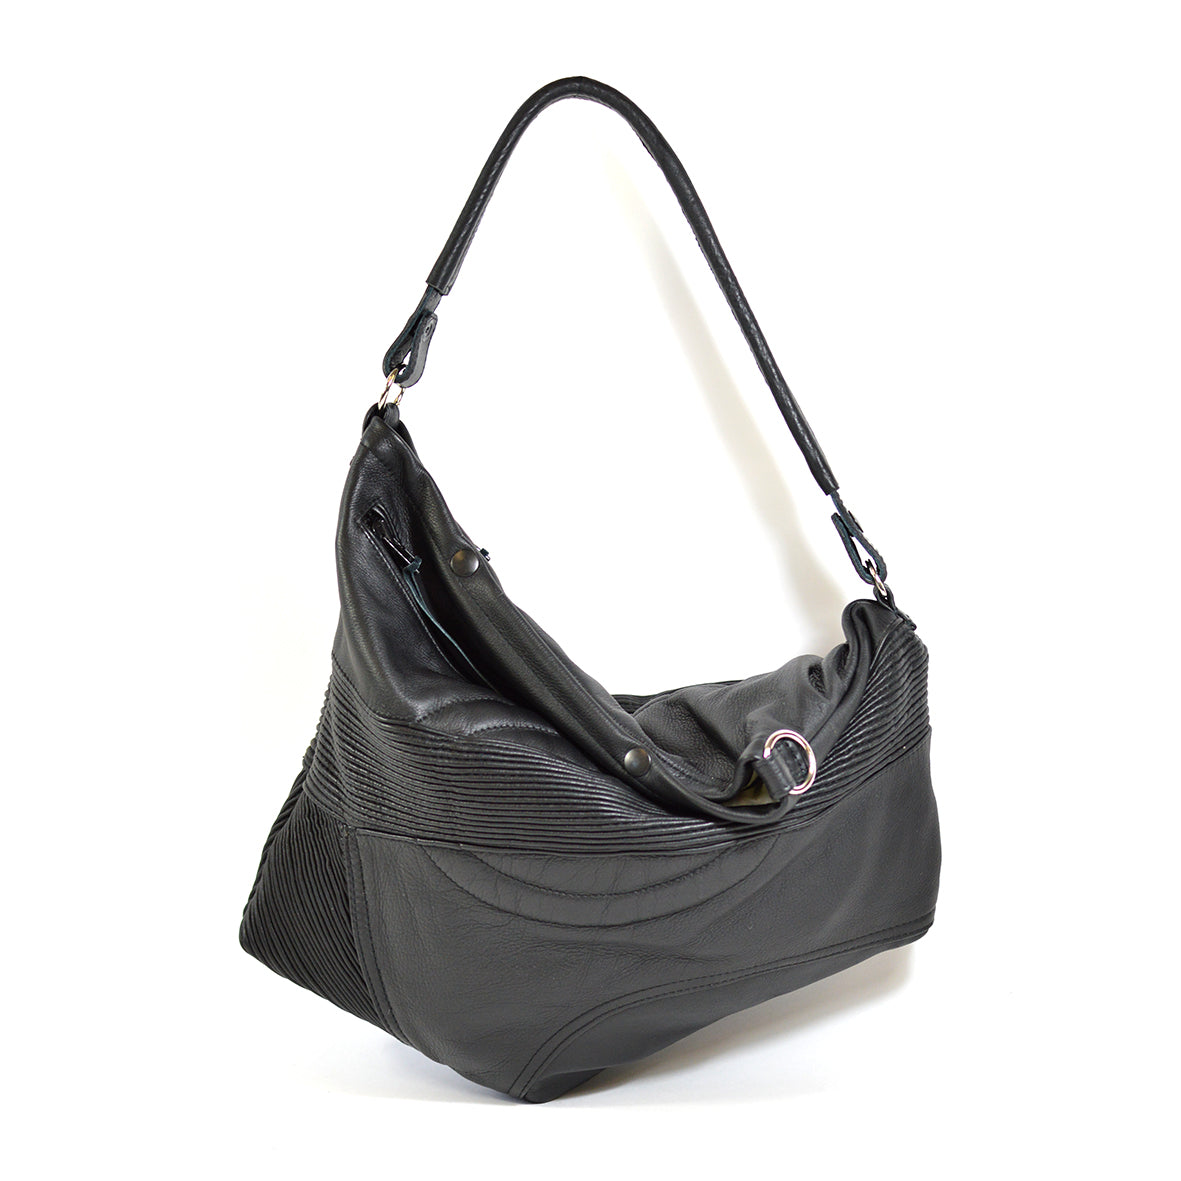 leather biker hobo bag - delacyonline - 1